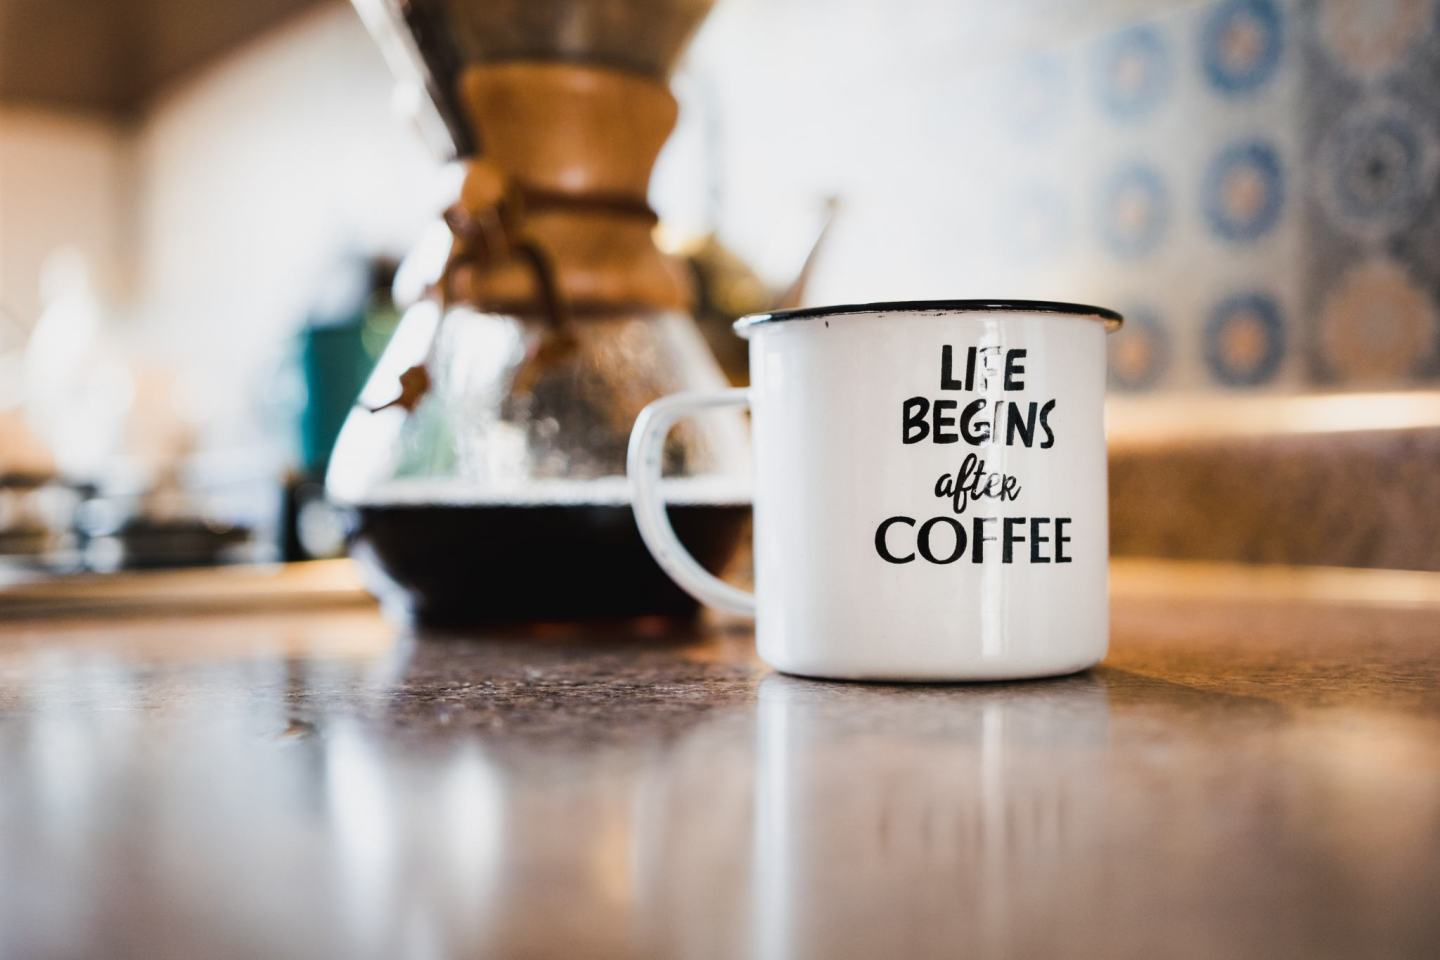 A cup of coffee on a desk